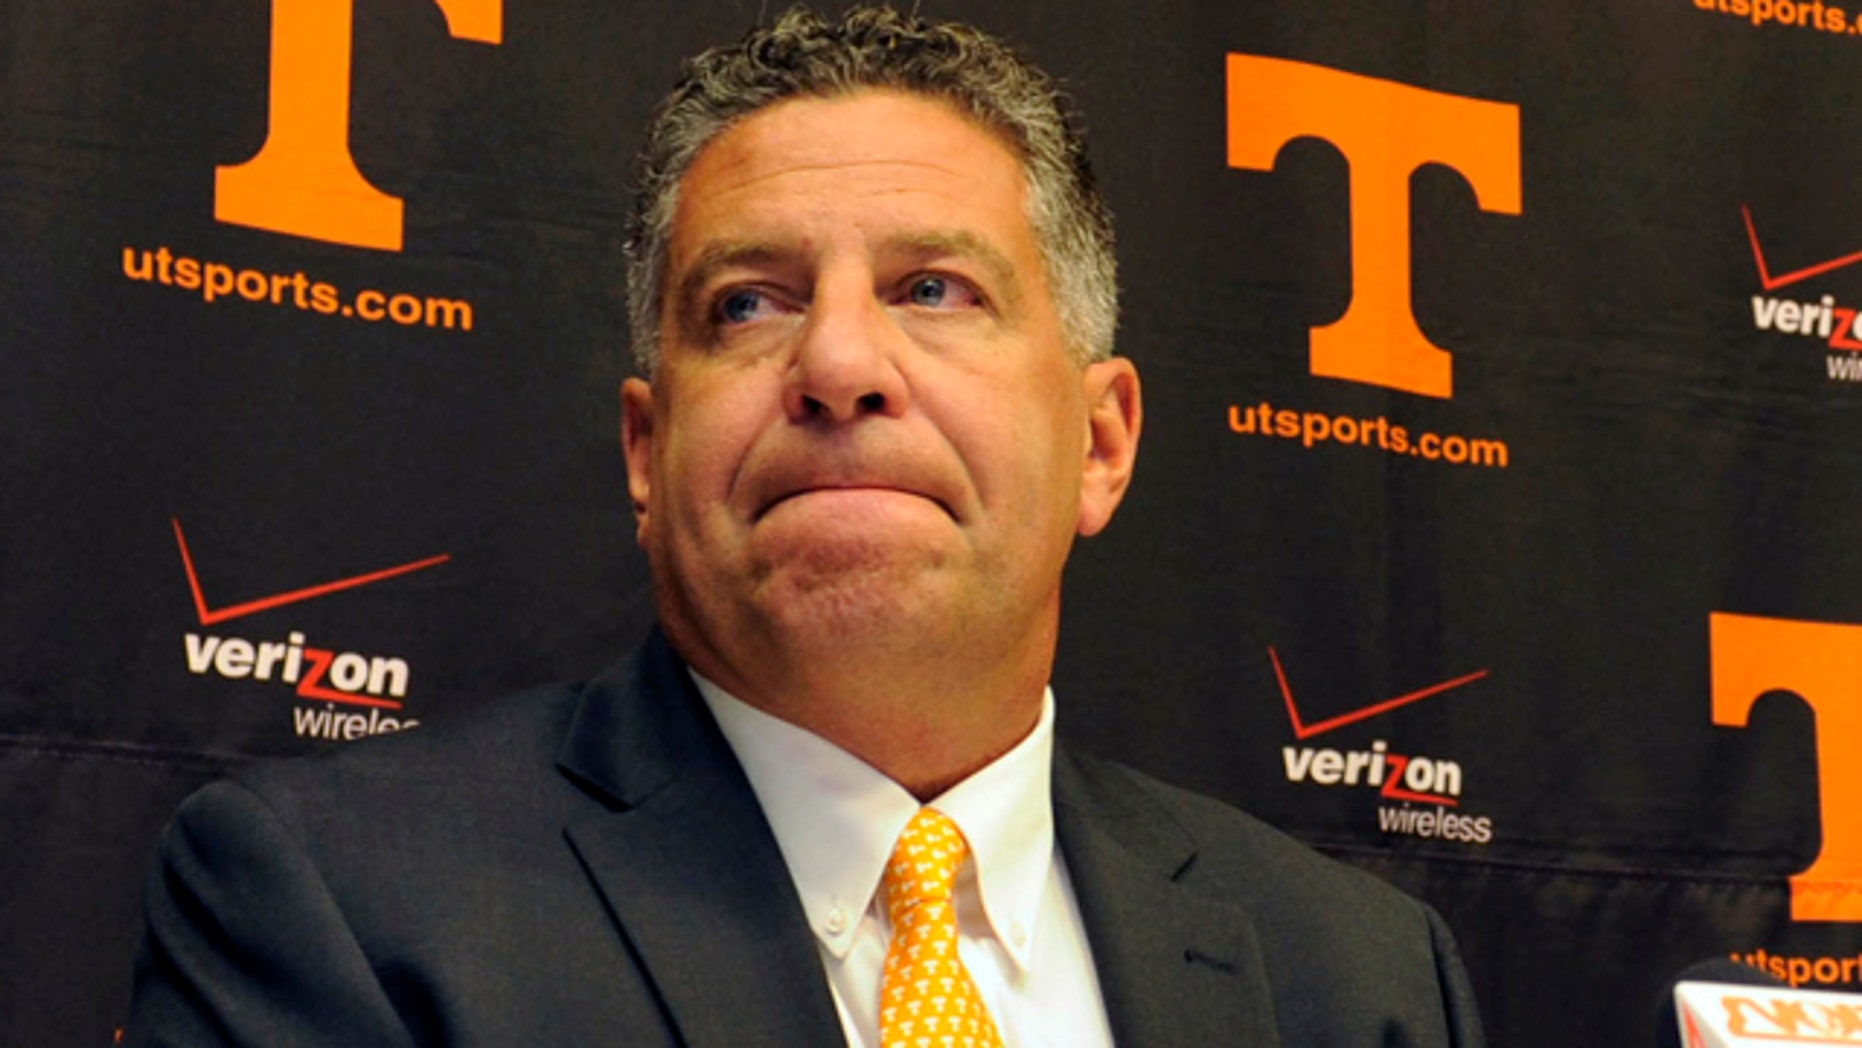 This Sept. 10, 2010, file photo shows University of Tennessee men's basketball coach Bruce Pearl grimacing during a news conference, where  Pearl expresses remorse for giving misleading information to the NCAA during an investigation into the school's basketball program, in Knoxville, Tenn.